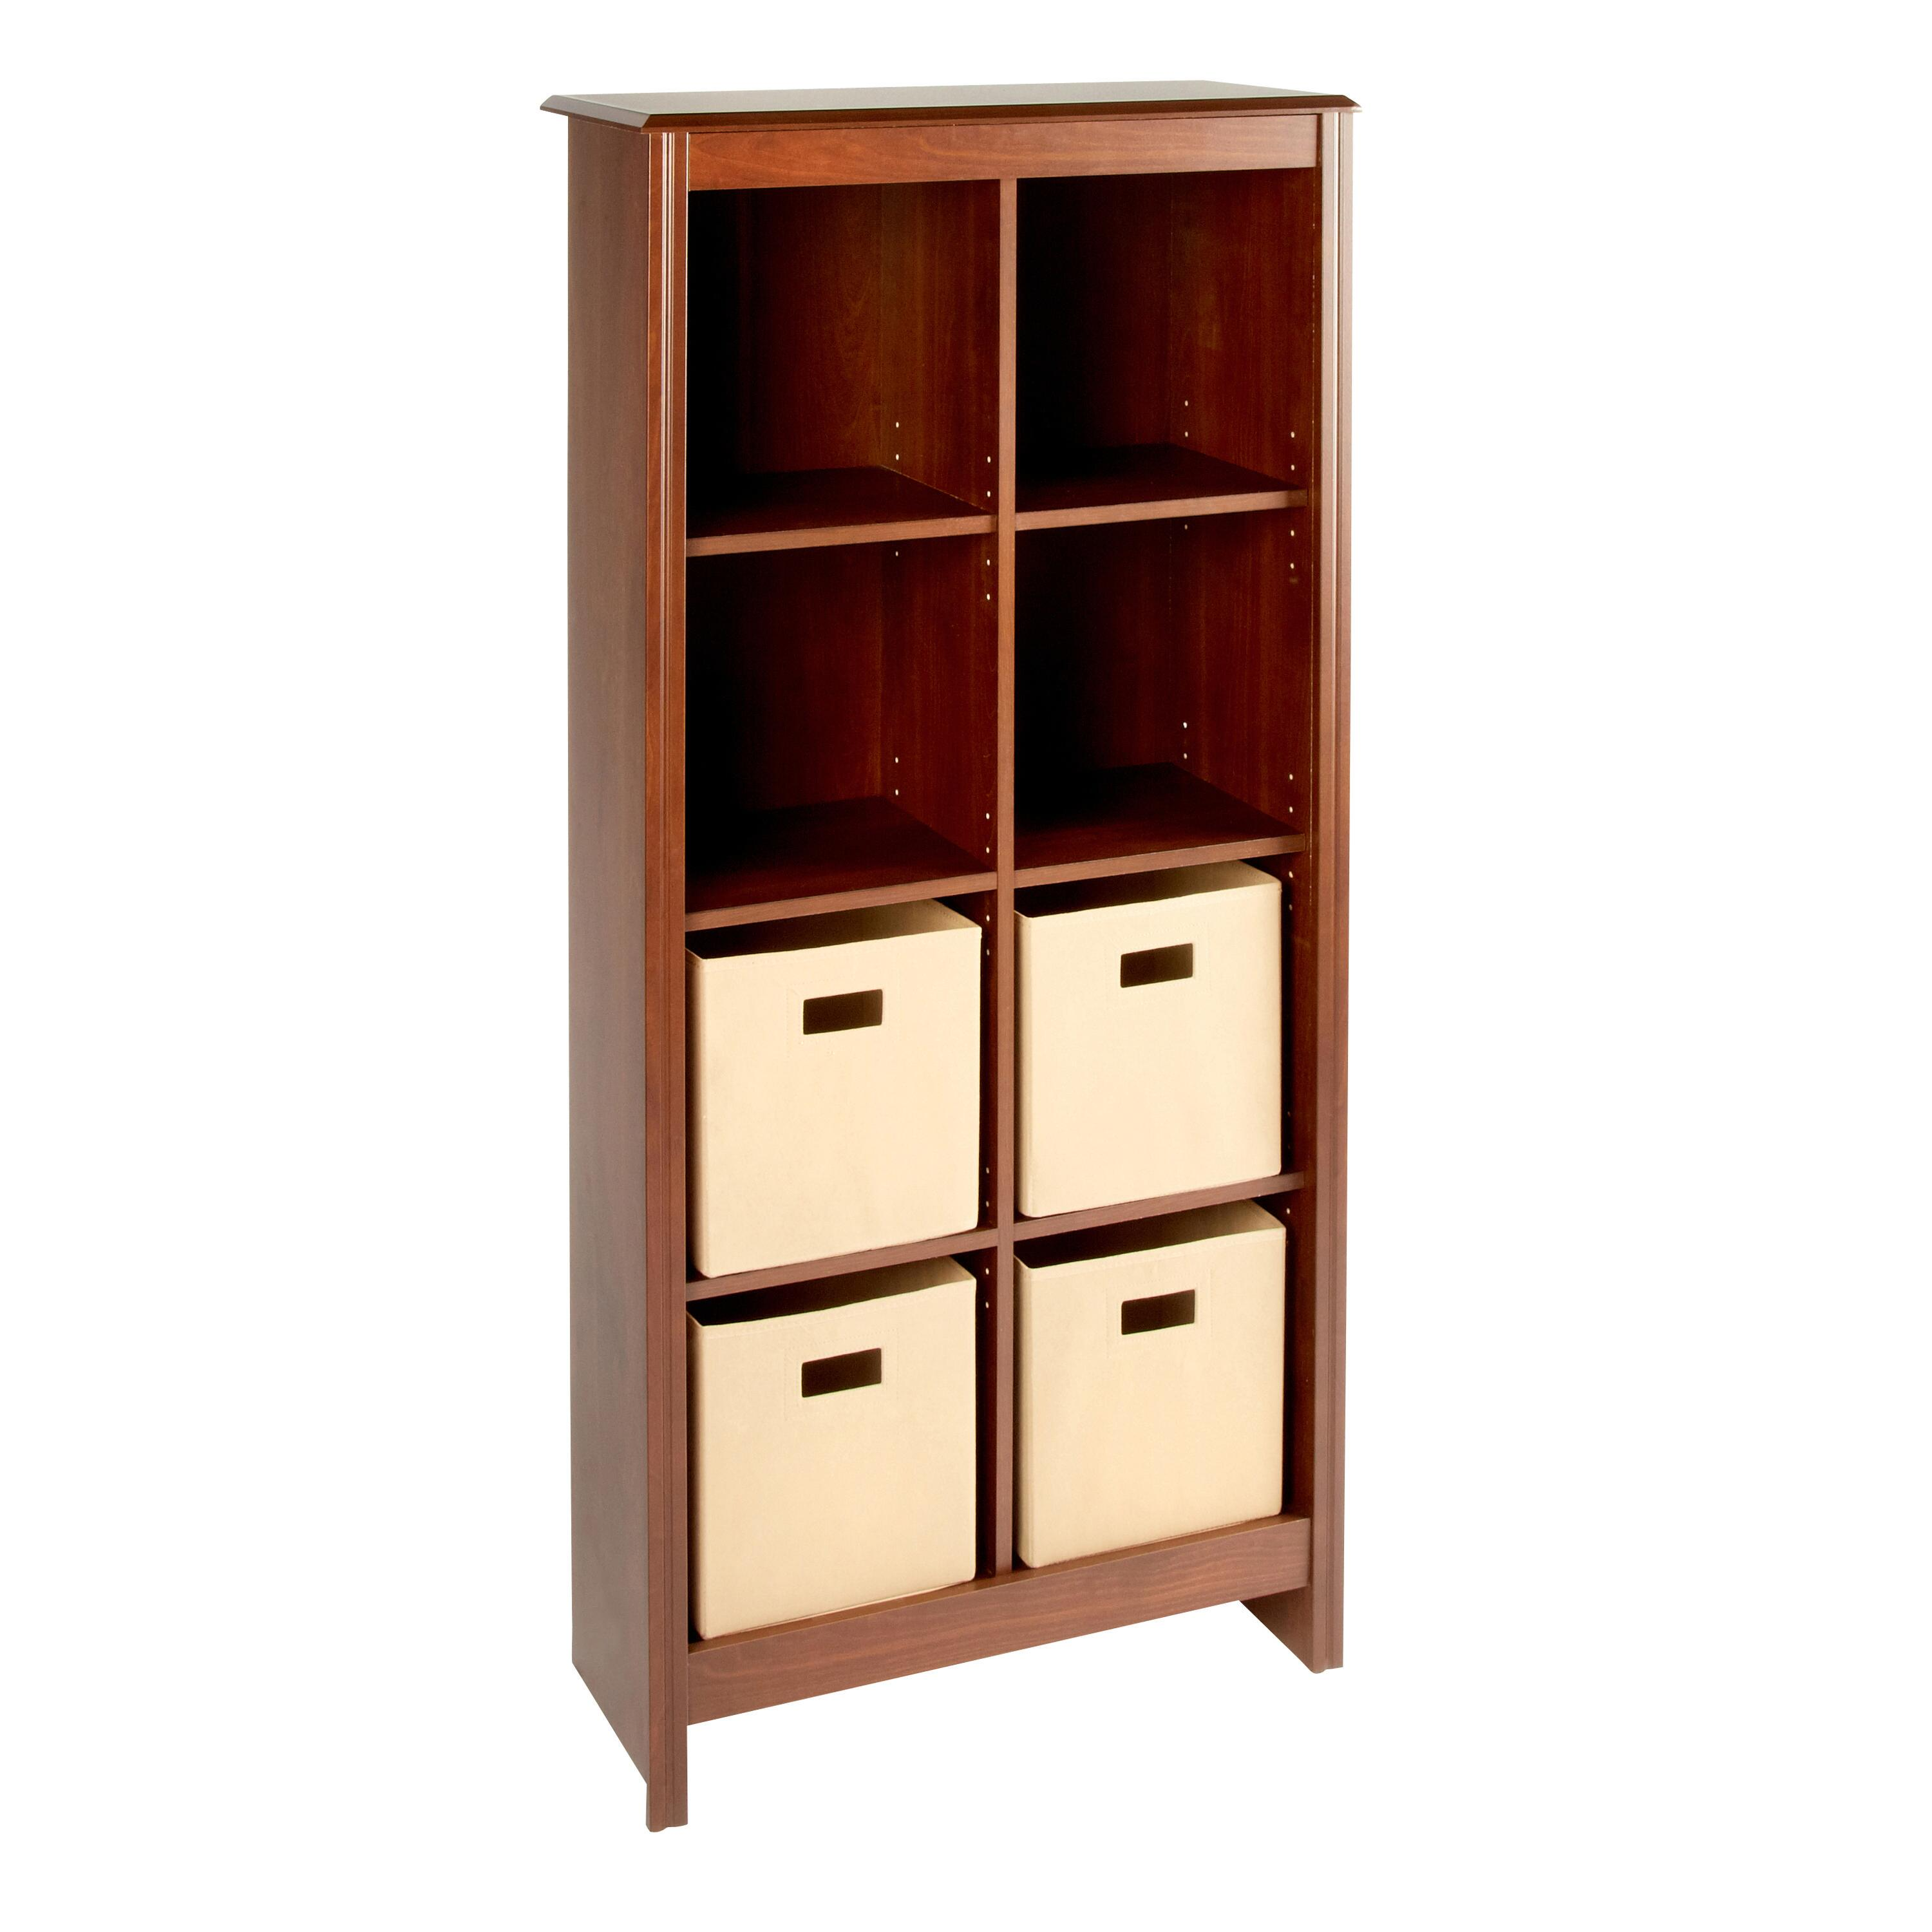 Cherry Wood 8 Cubby Bookcase Cabinet With Storage Bins